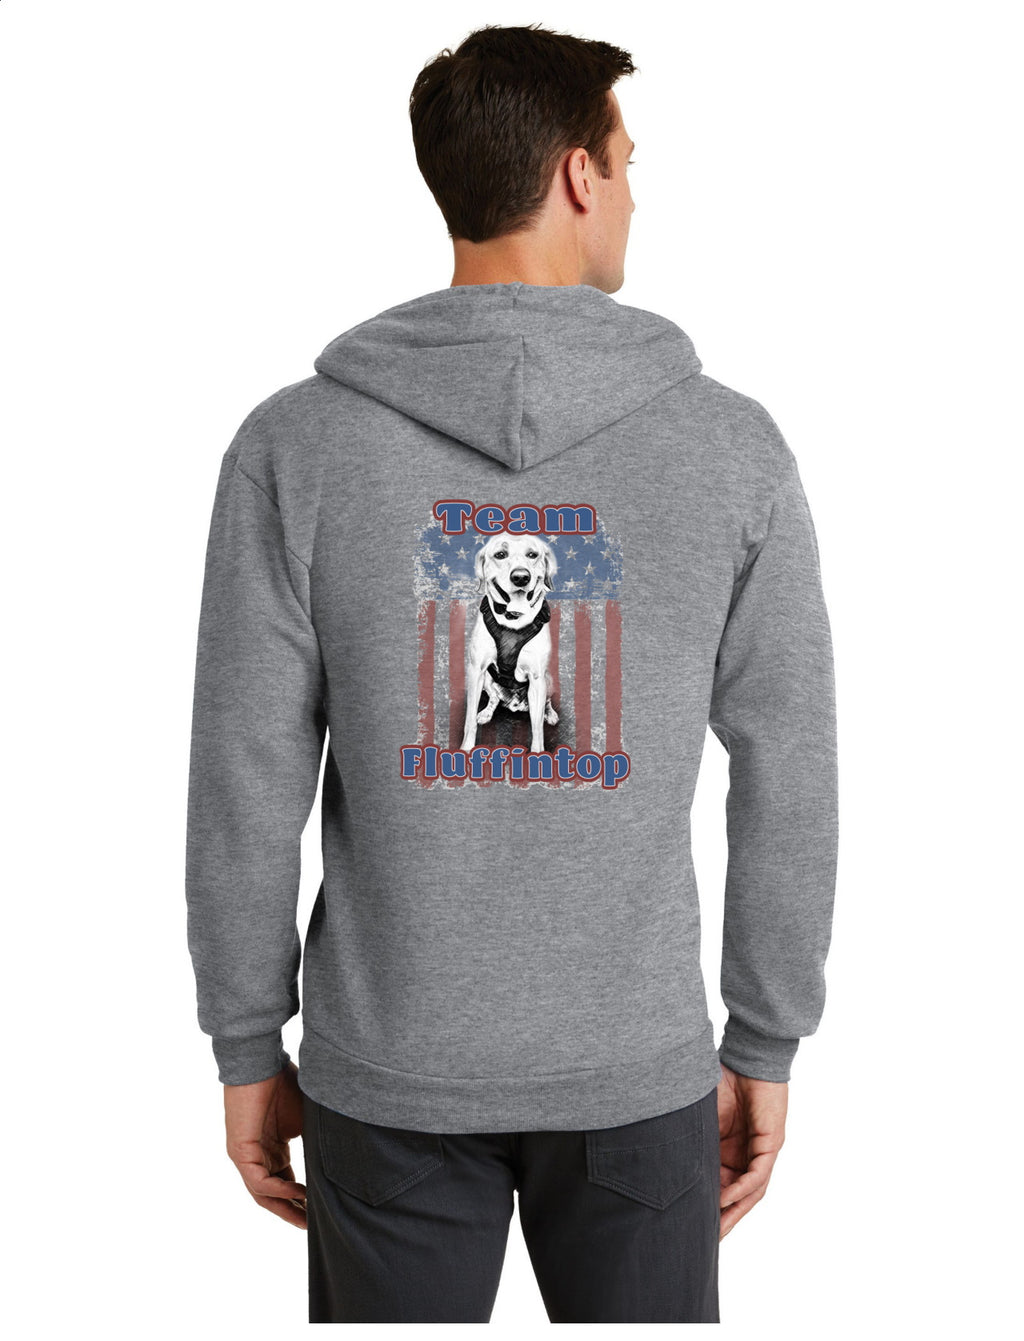 K9 Loki Supporter - Port & Company® Core Fleece Full-Zip Hooded Sweatshirt